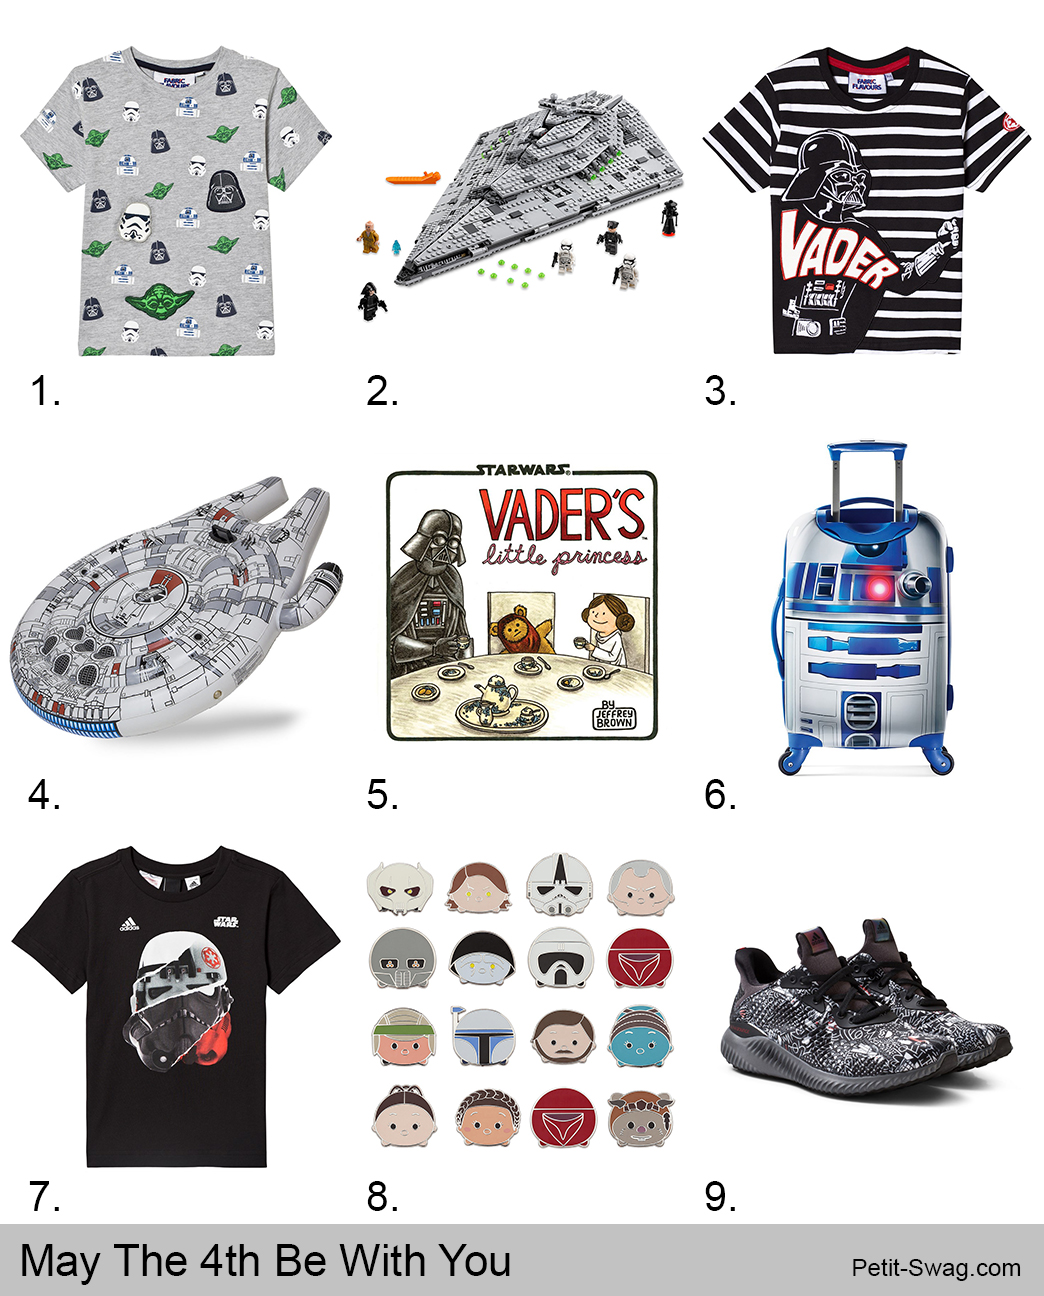 May The 4th Be With You | Petit-Swag.com